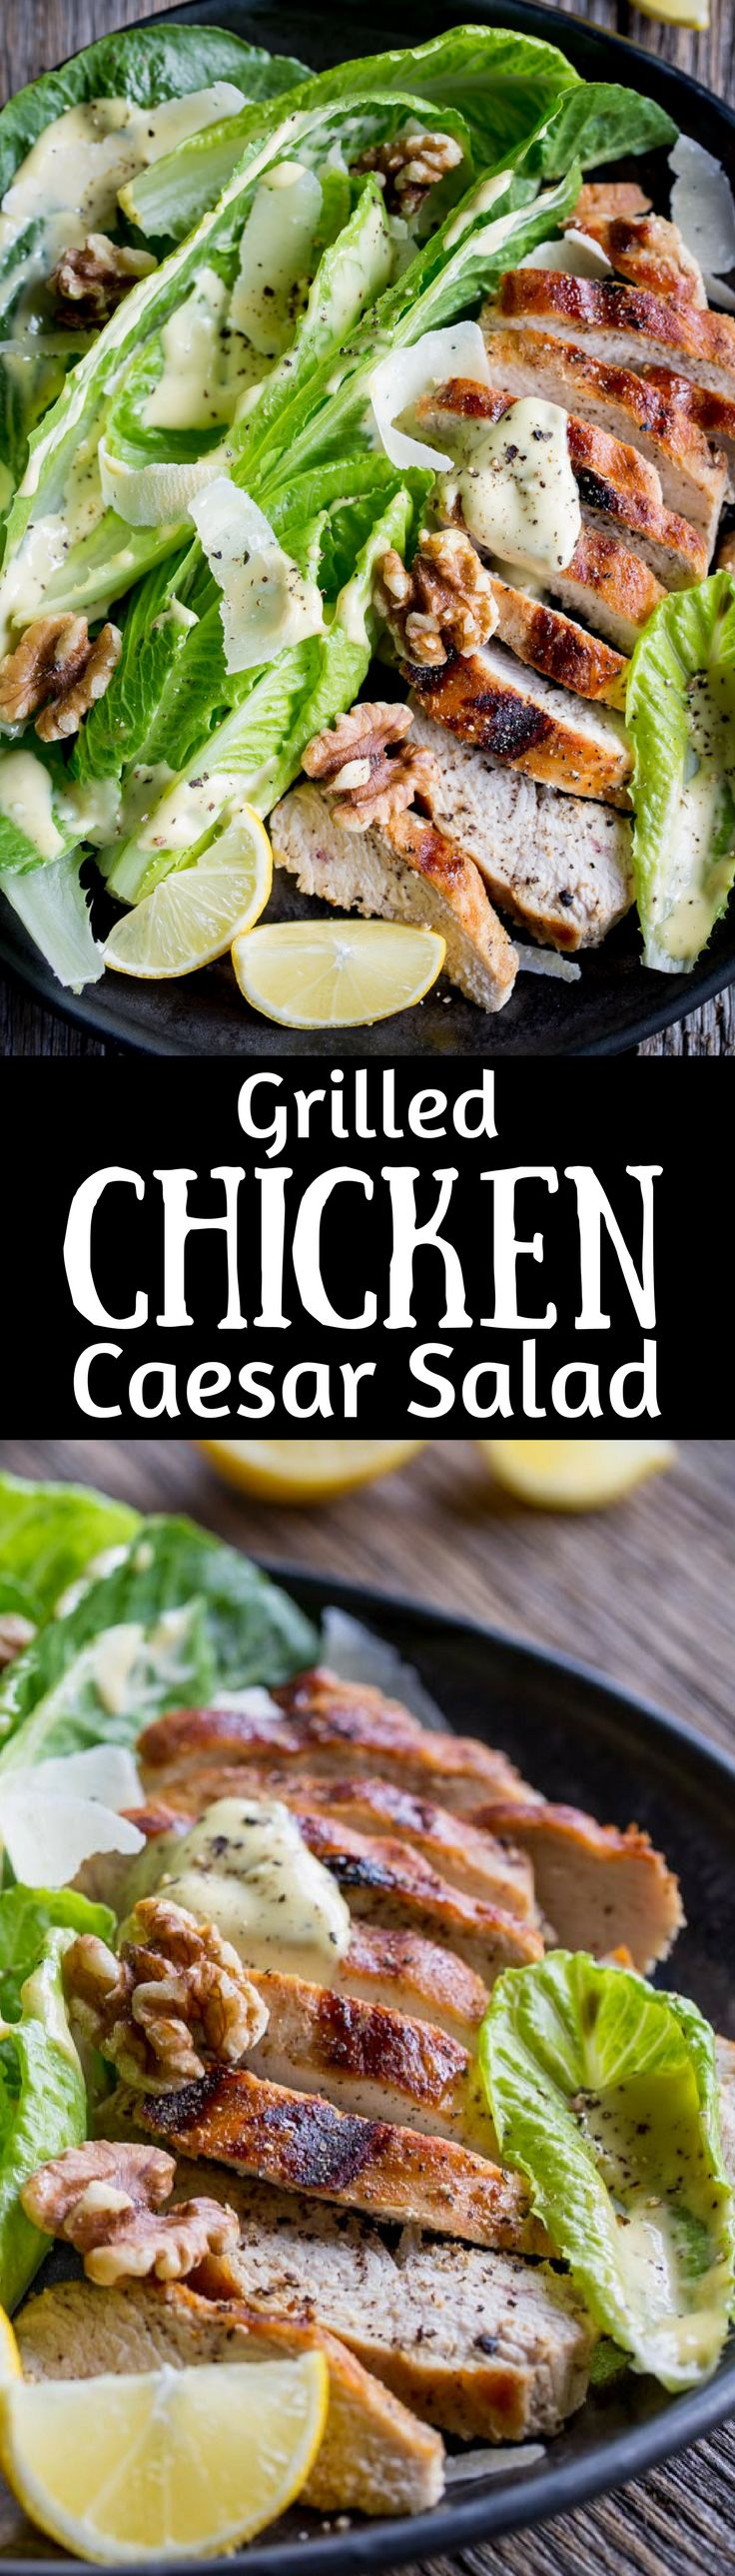 Grilled Chicken Caesar Salad ~ an easy homemade Caesar dressing is drizzled over tender grilled chicken and hearts of romaine lettuce, then topped with shaved Parmesan, plenty of fresh ground black pepper and toasted walnuts. This main dish salad is sure to please your salad loving family! www.savingdessert.com